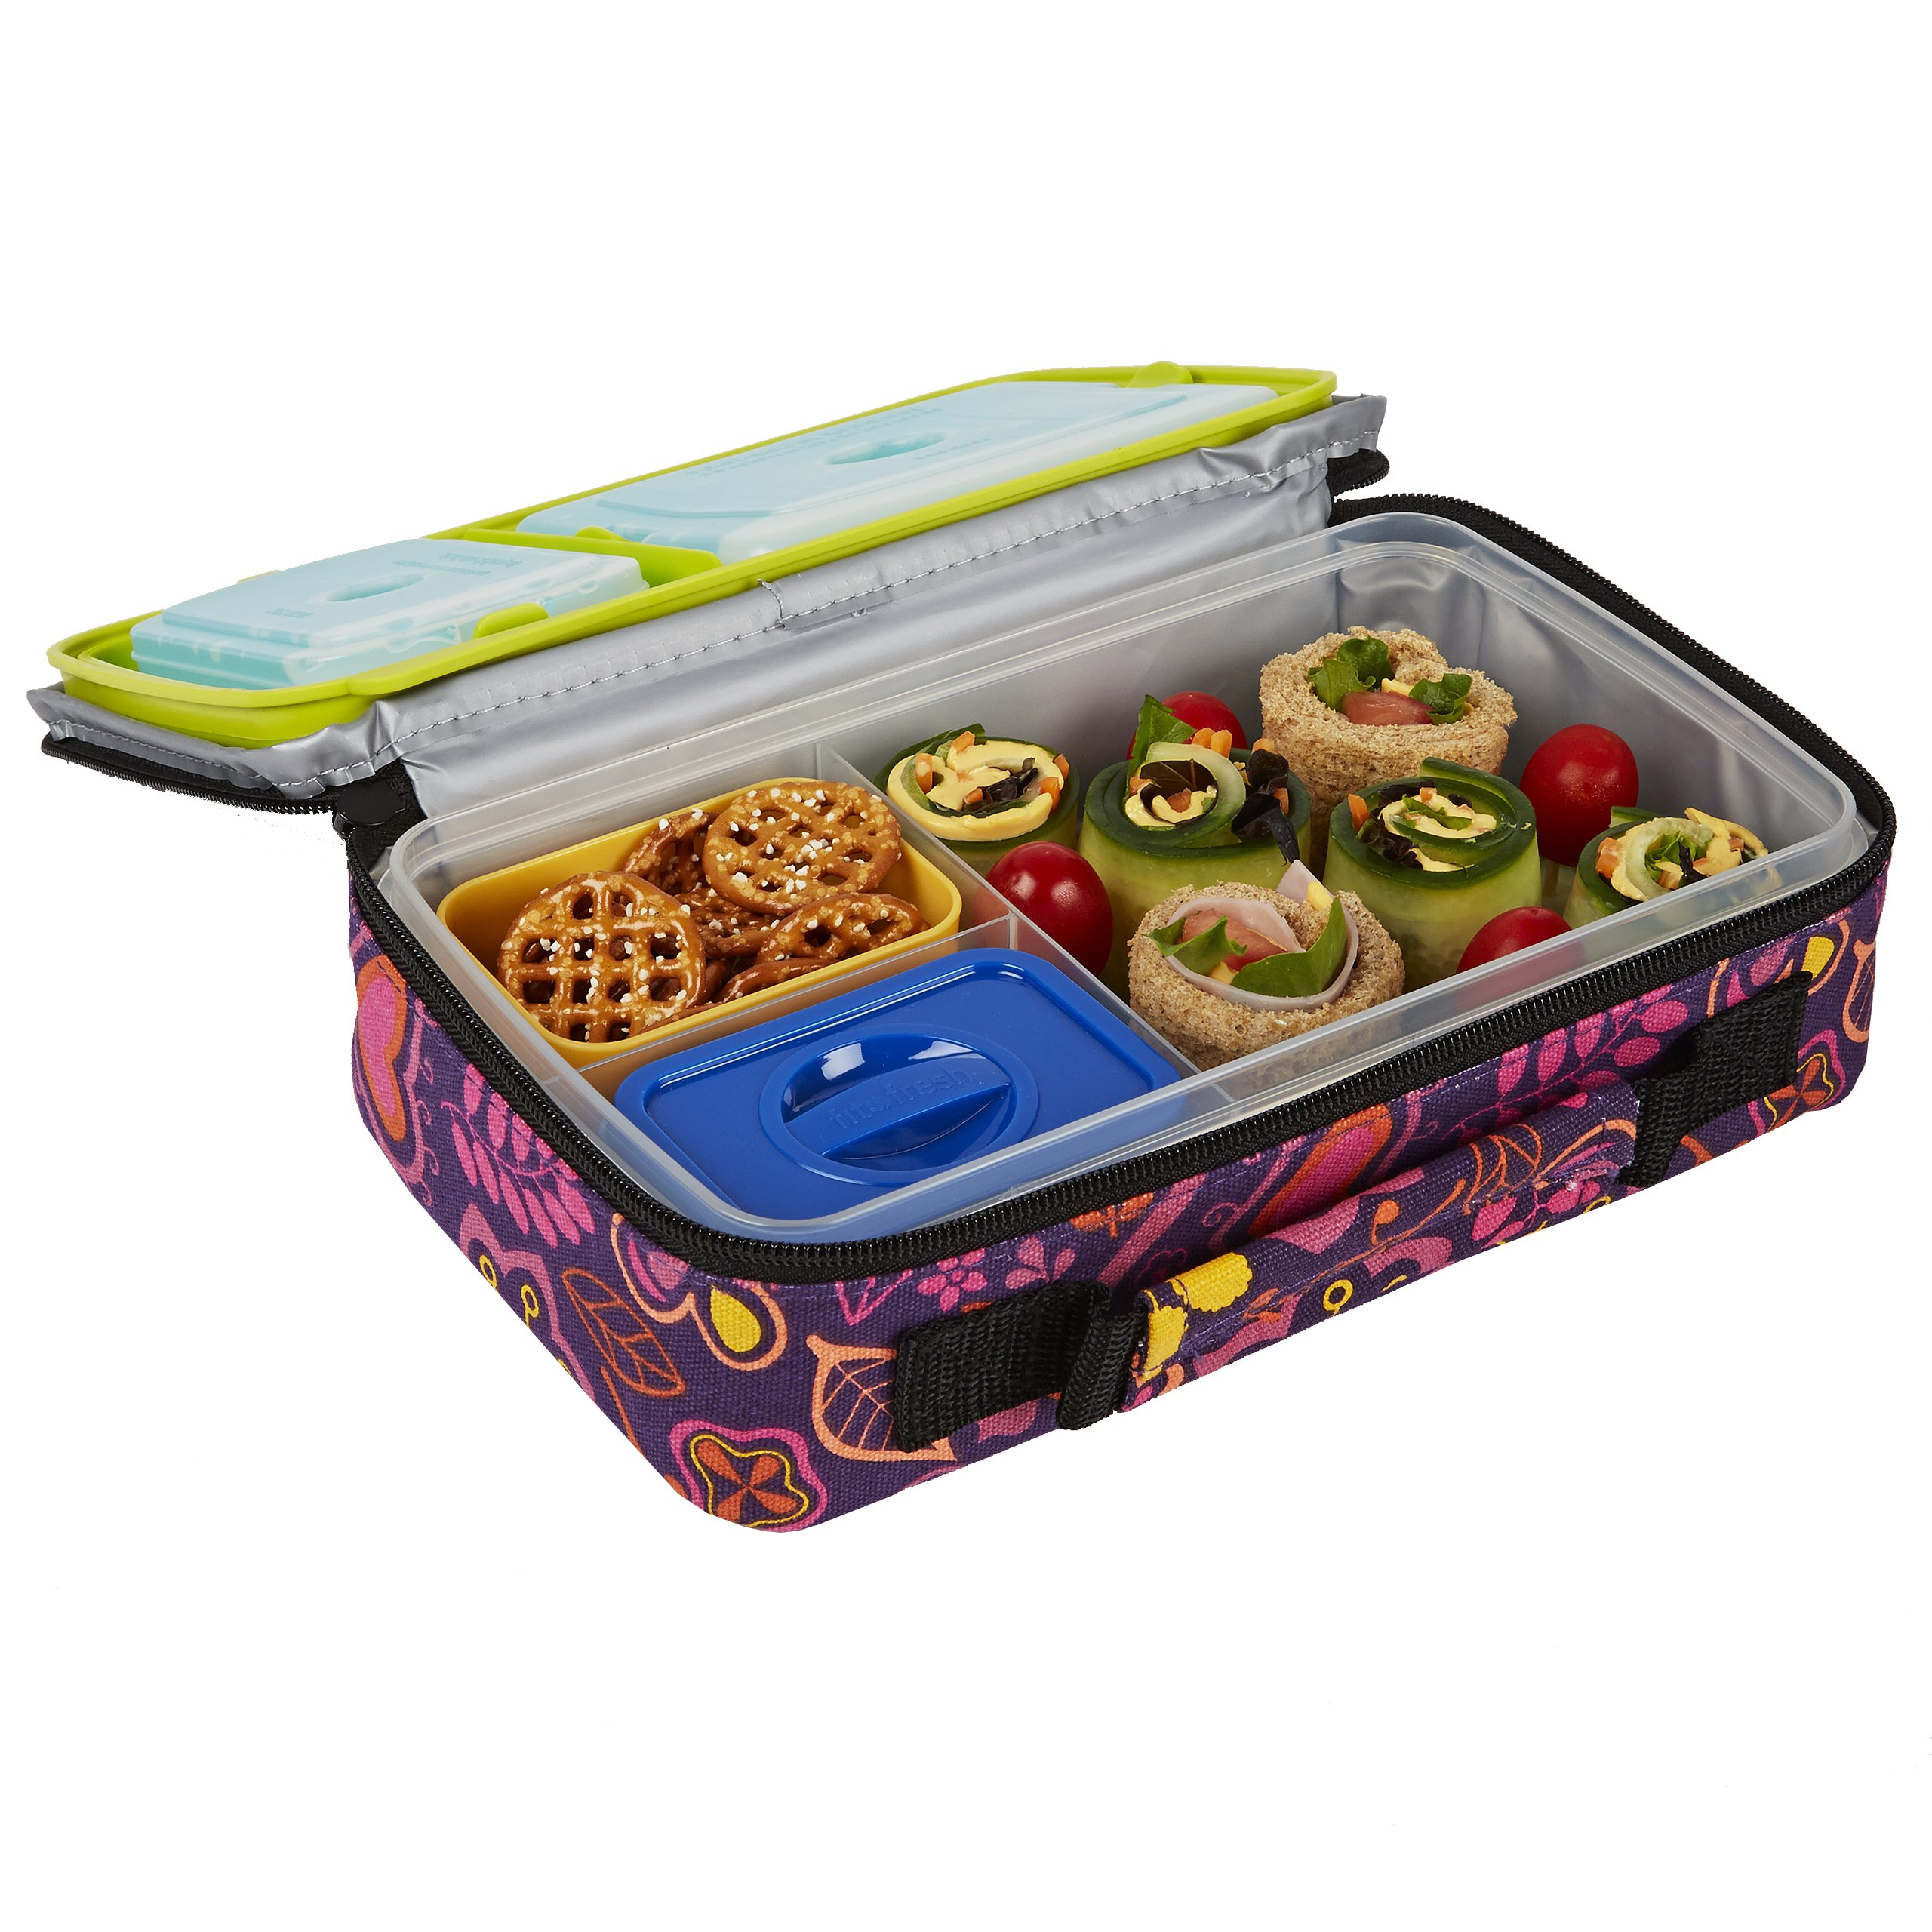 fit fresh insulated bento box lunch bag kit with carry strap kids or adults ebay. Black Bedroom Furniture Sets. Home Design Ideas